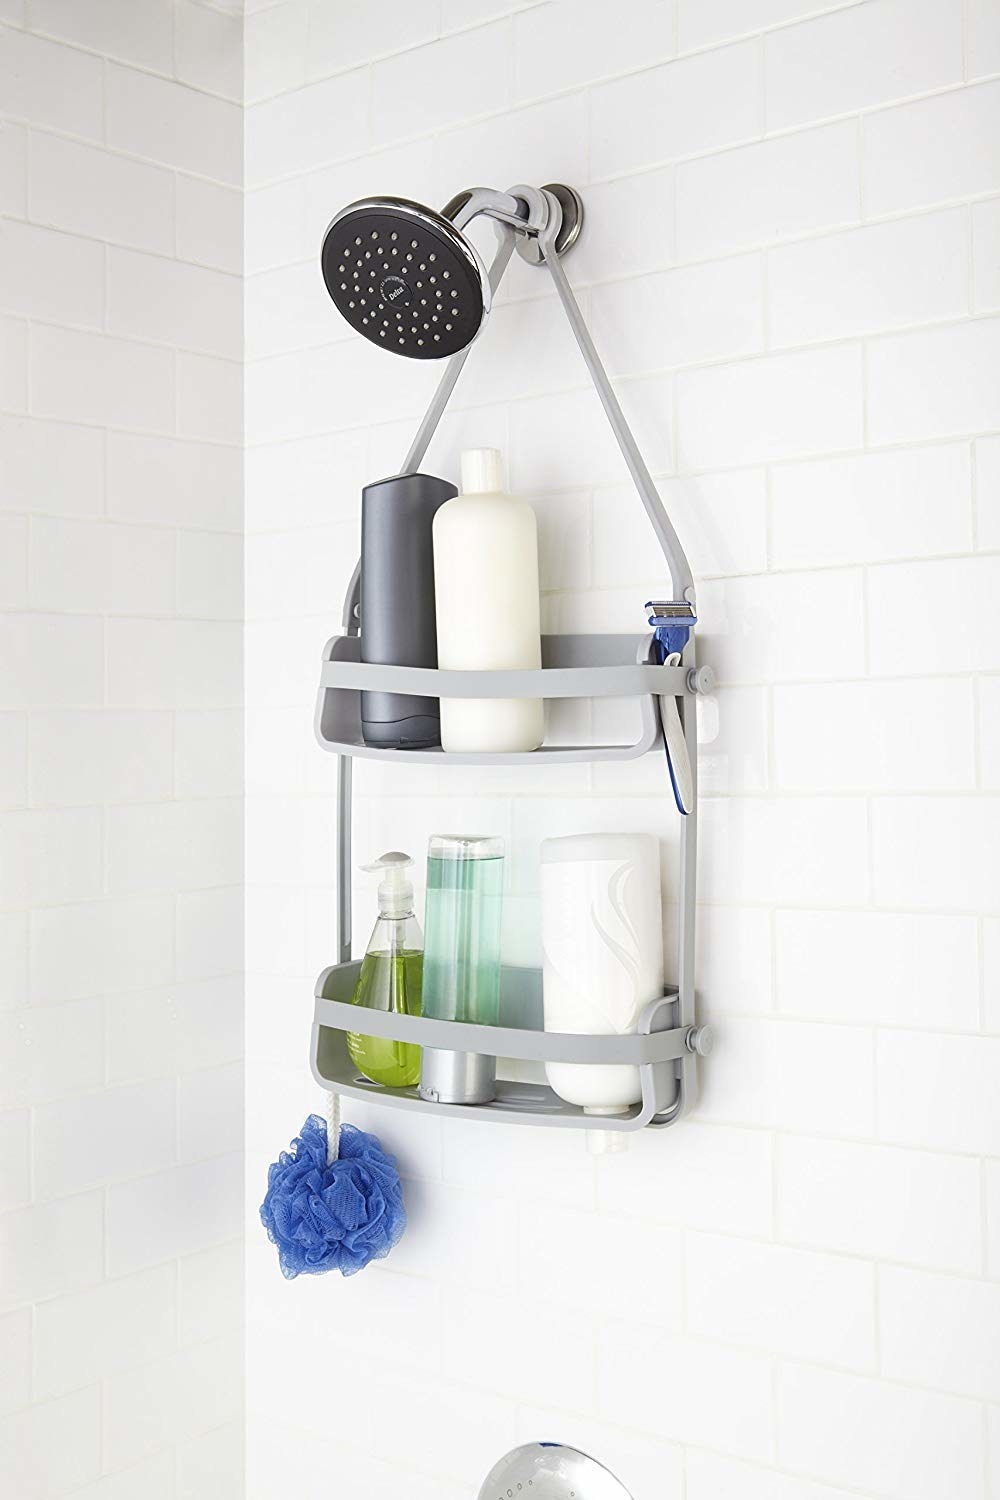 The shower caddy with toiletries in it